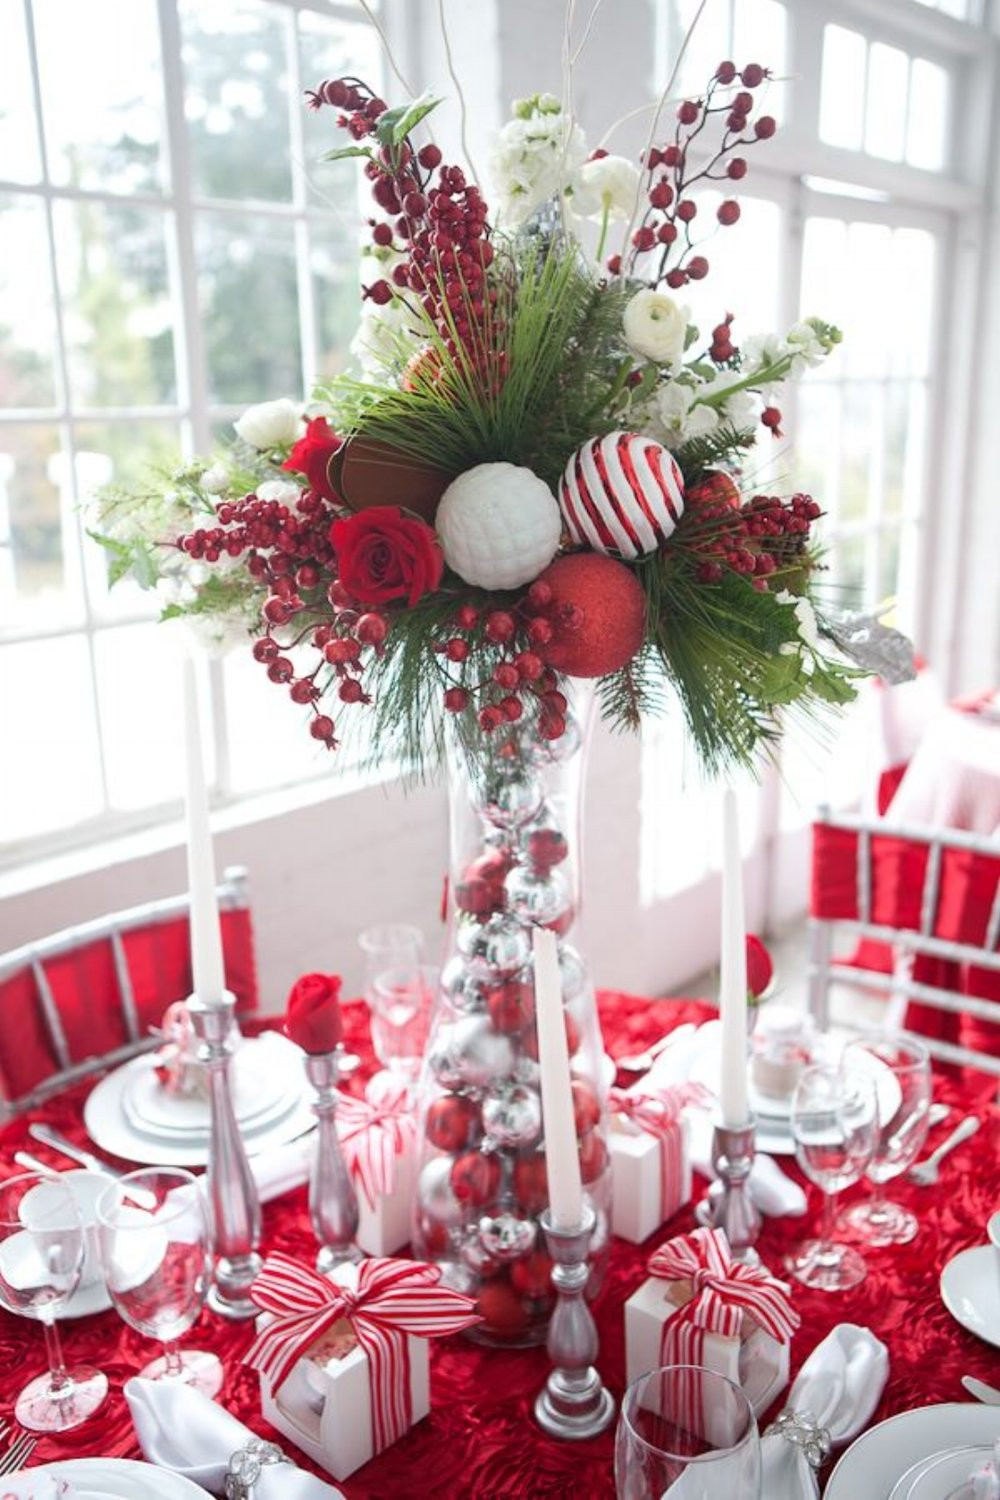 Christmas Decorators Luxury 34 Gorgeous Christmas Tablescapes and Centerpiece Ideas Of Christmas Decorators New 46 Beautiful Christmas Porch Decorating Ideas — Style Estate